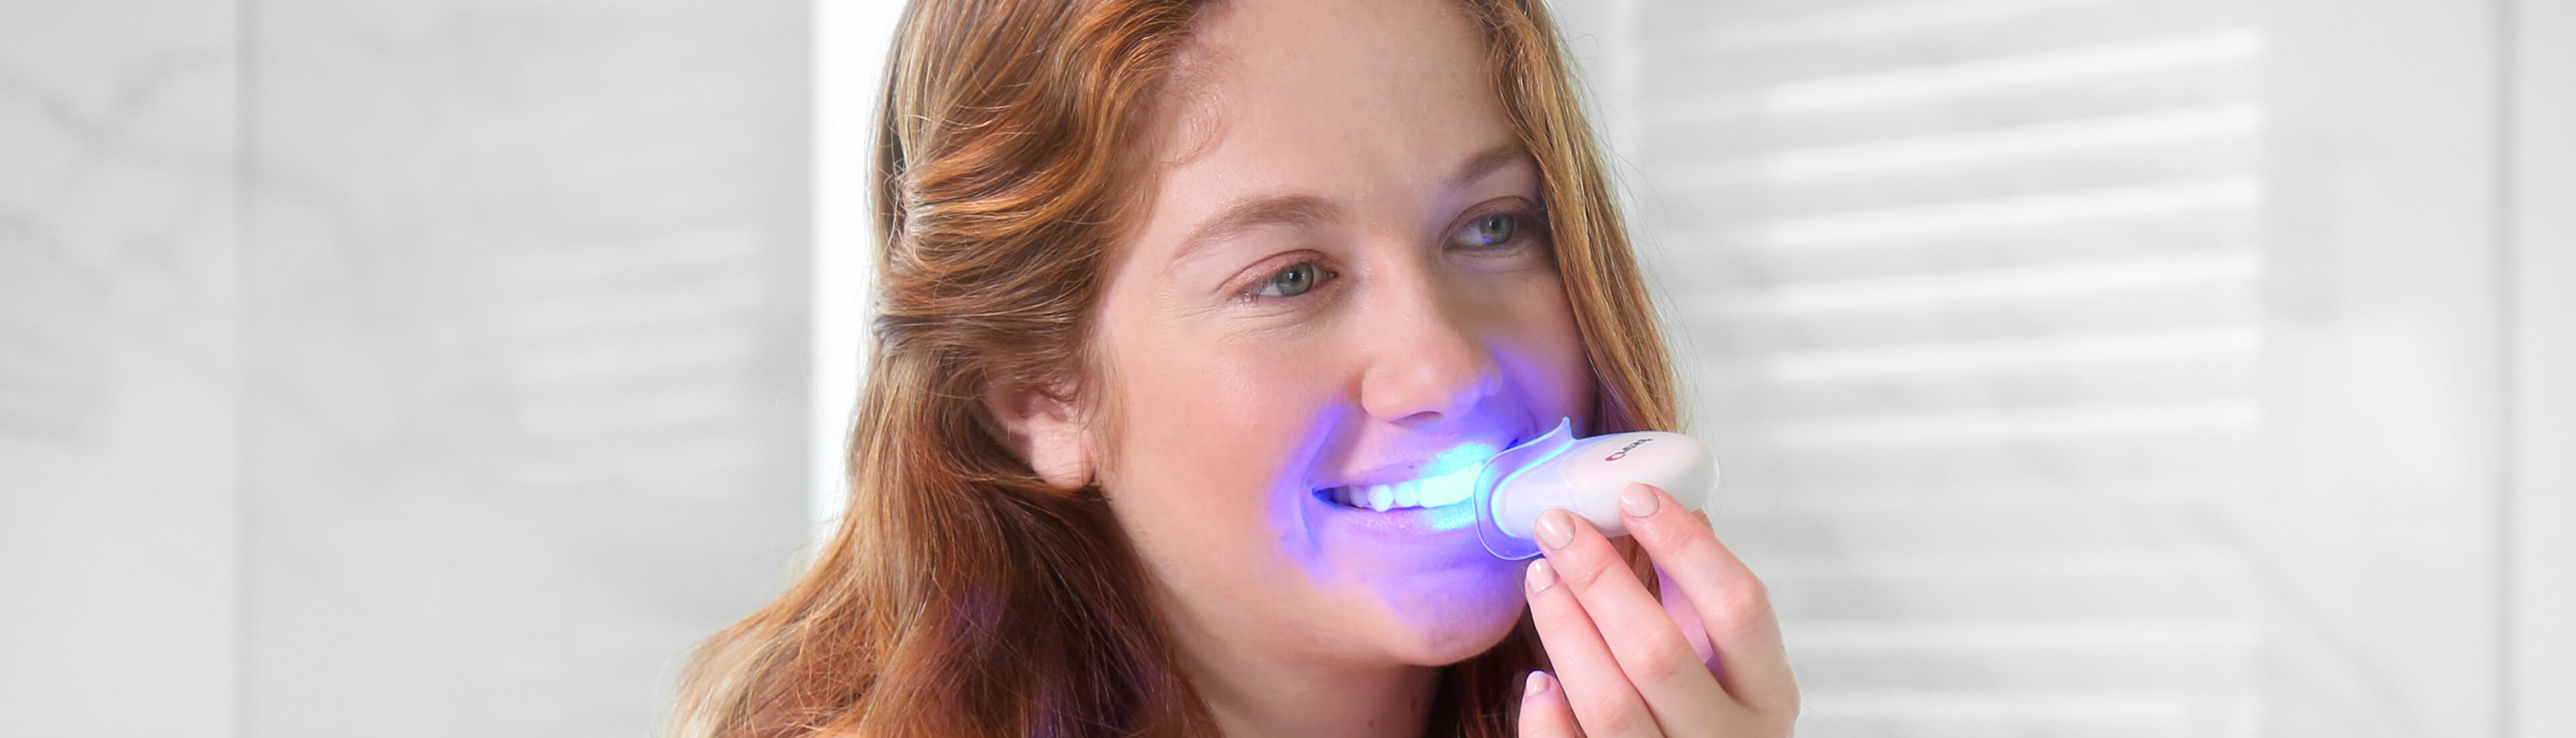 Red haired girl holding the Crest Blue Light in front of her mouth | Crest White Smile